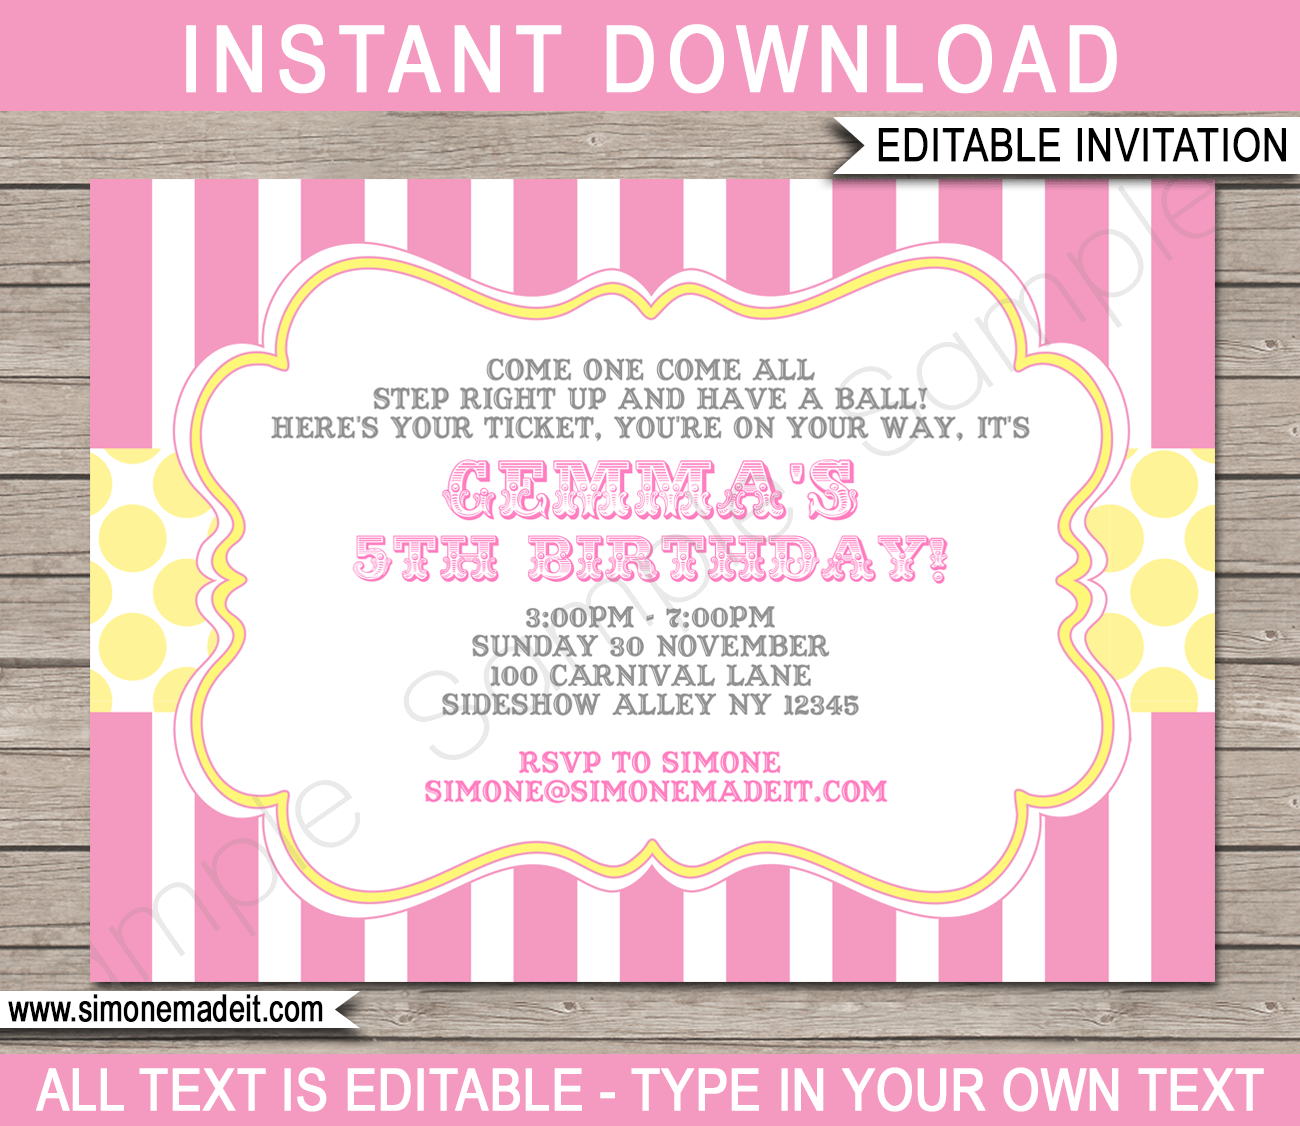 Carnival Party Invitations | Circus Party | Pink and Yellow | Birthday Party | Editable DIY Theme Template | INSTANT DOWNLOAD $7.50 via SIMONEmadeit.com